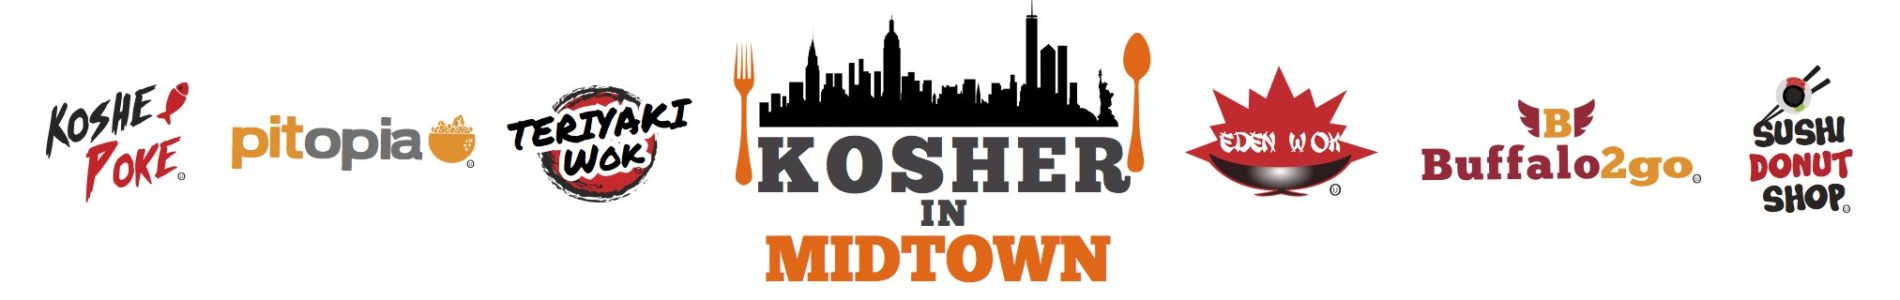 kosher in midtown logos banner